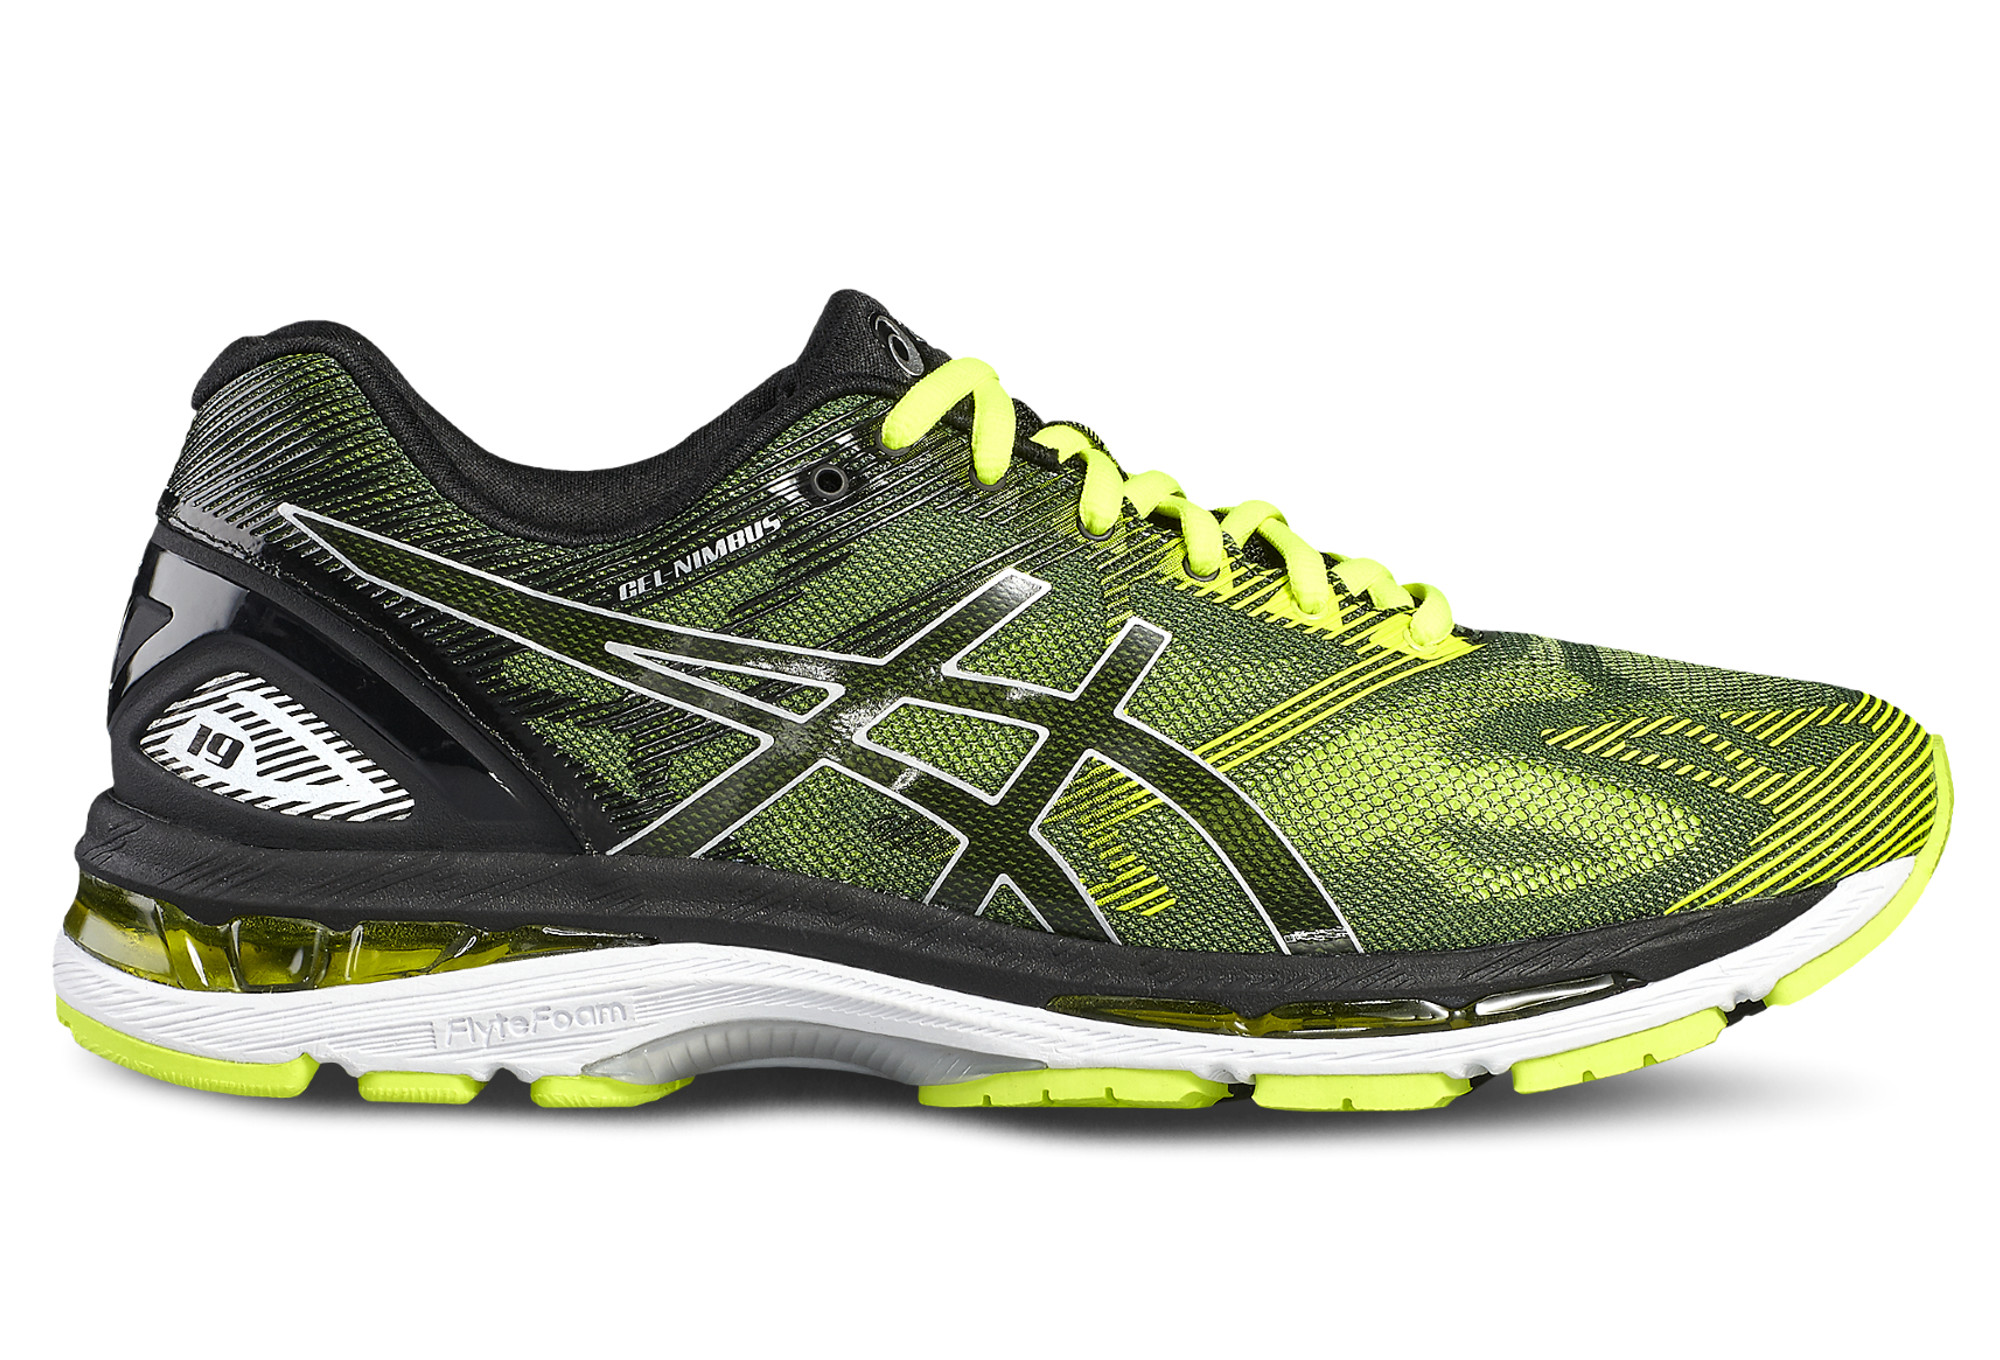 chaussures de running asics gel nimbus 19 noir jaune. Black Bedroom Furniture Sets. Home Design Ideas